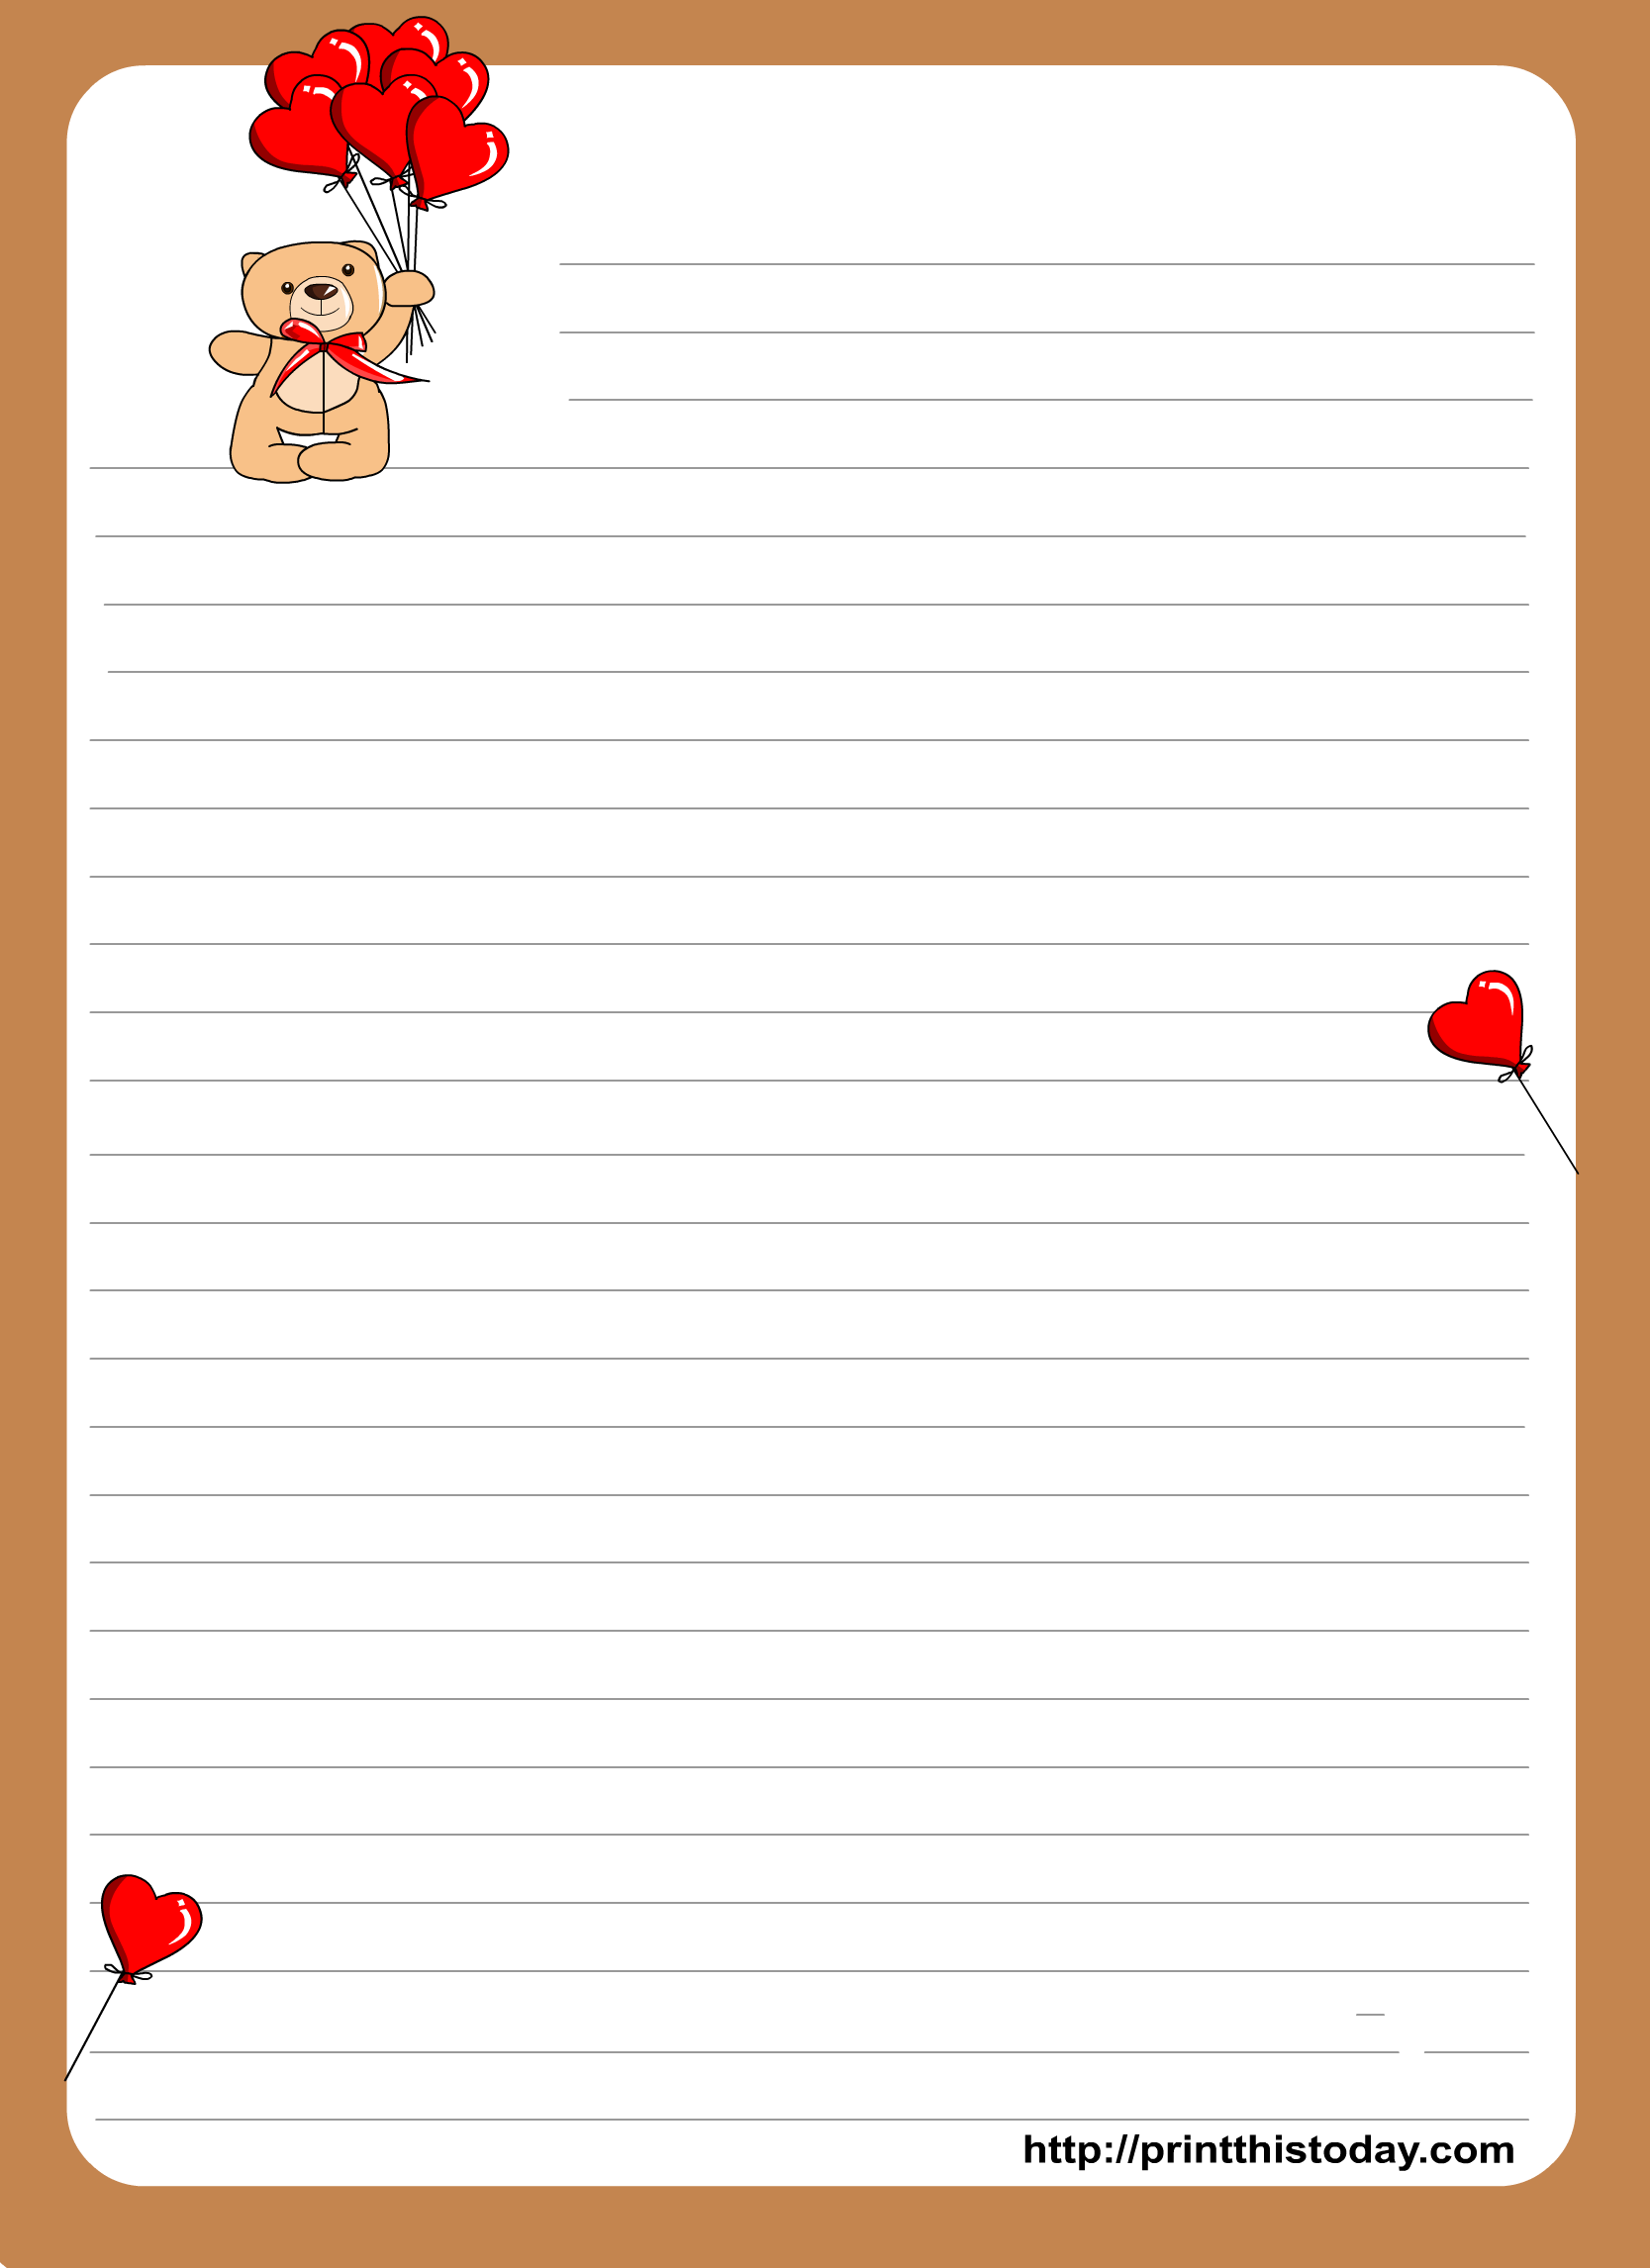 teddy bear writing paper for kids letter pad stationery design teddy bear holding balloons